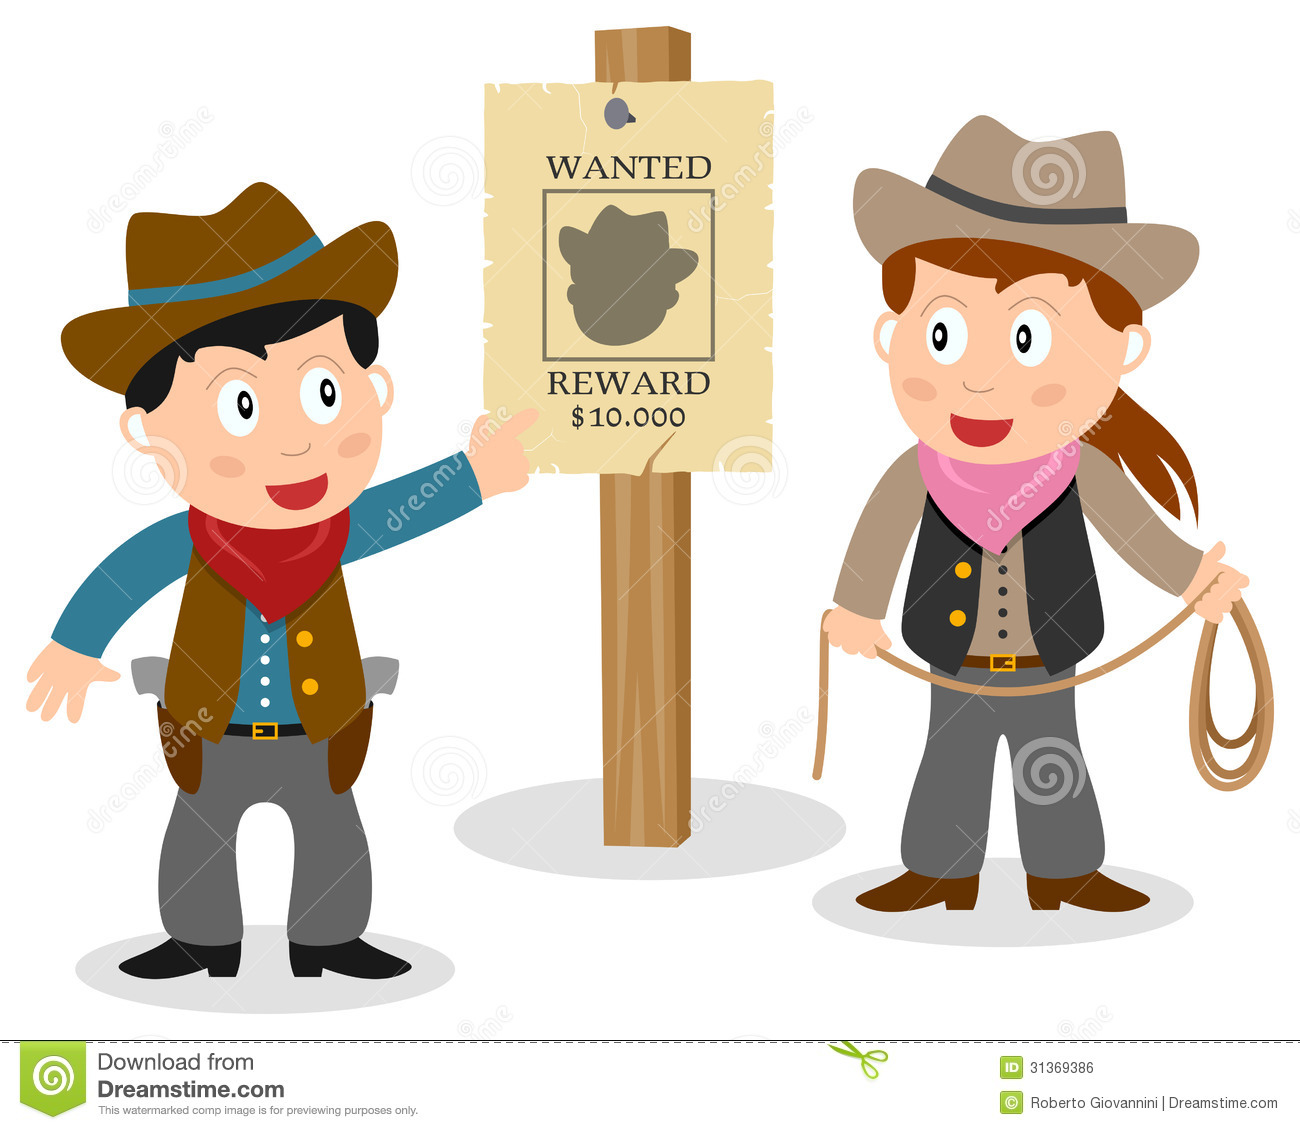 Cowboys Looking Wanted Poster Stock Vector - Illustration of design ...